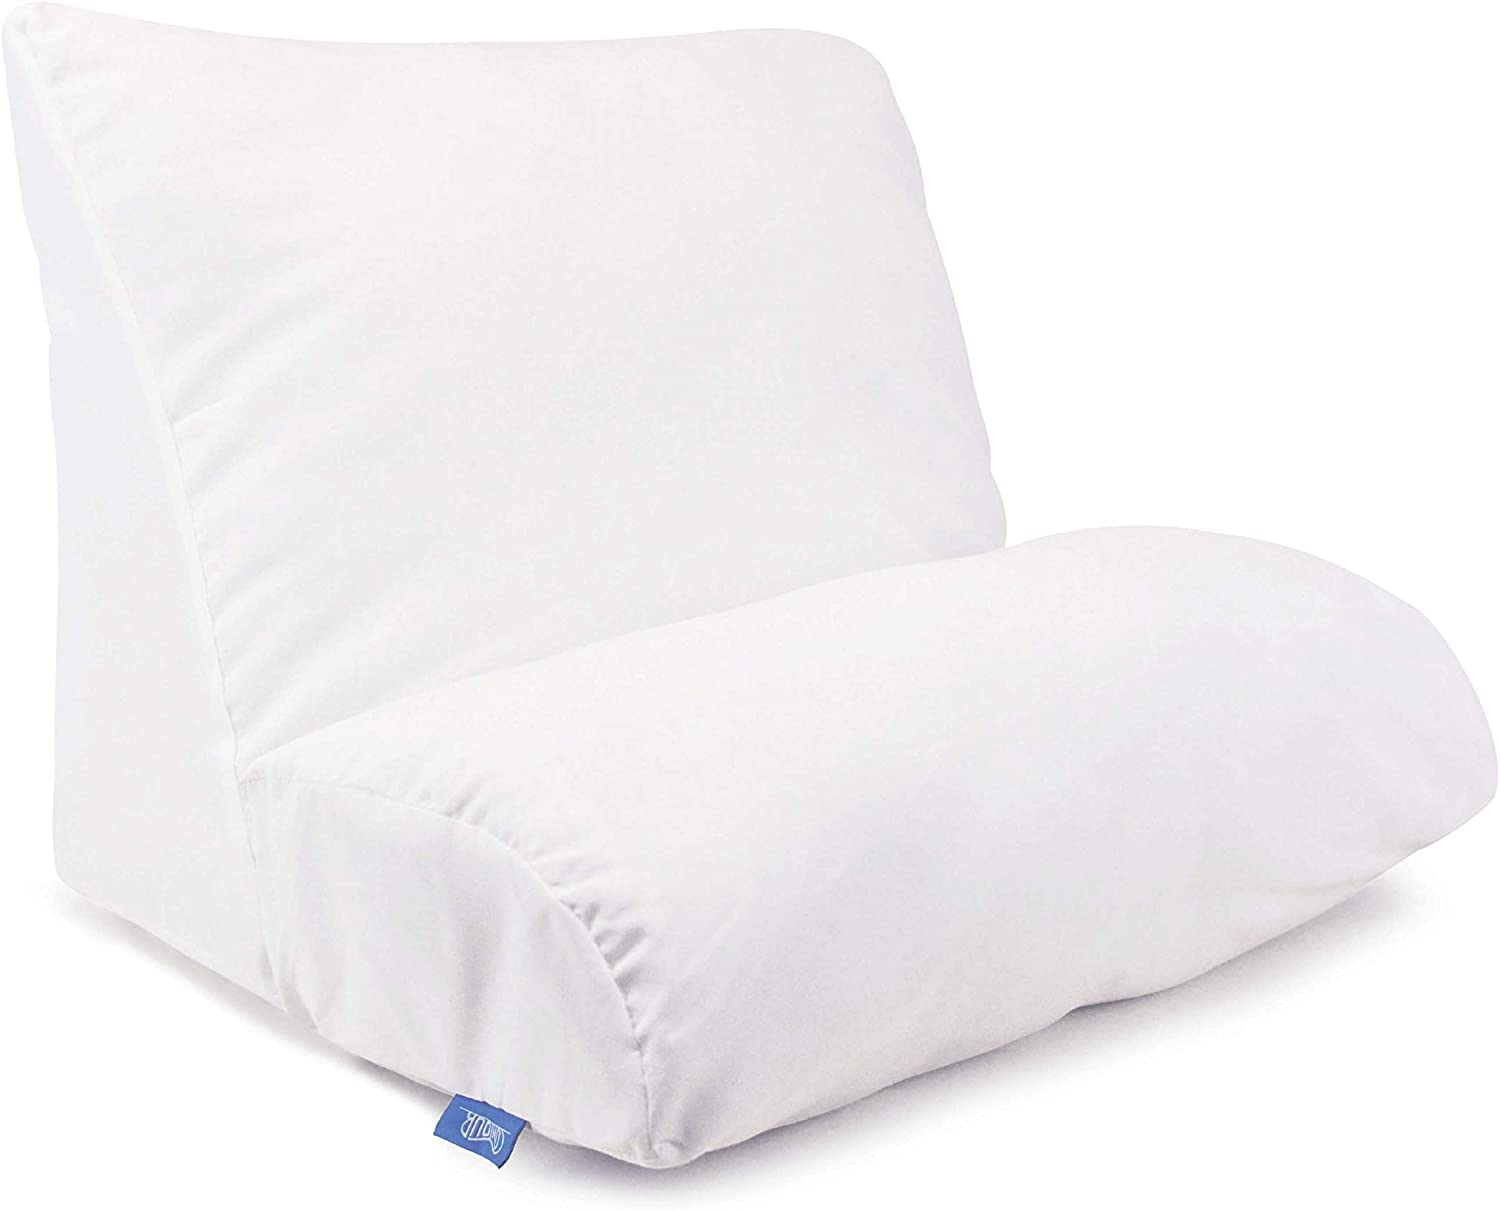 Contour Products, Flip Pillow, Standard Size (20 inch Width), Includes White Pillow Cover